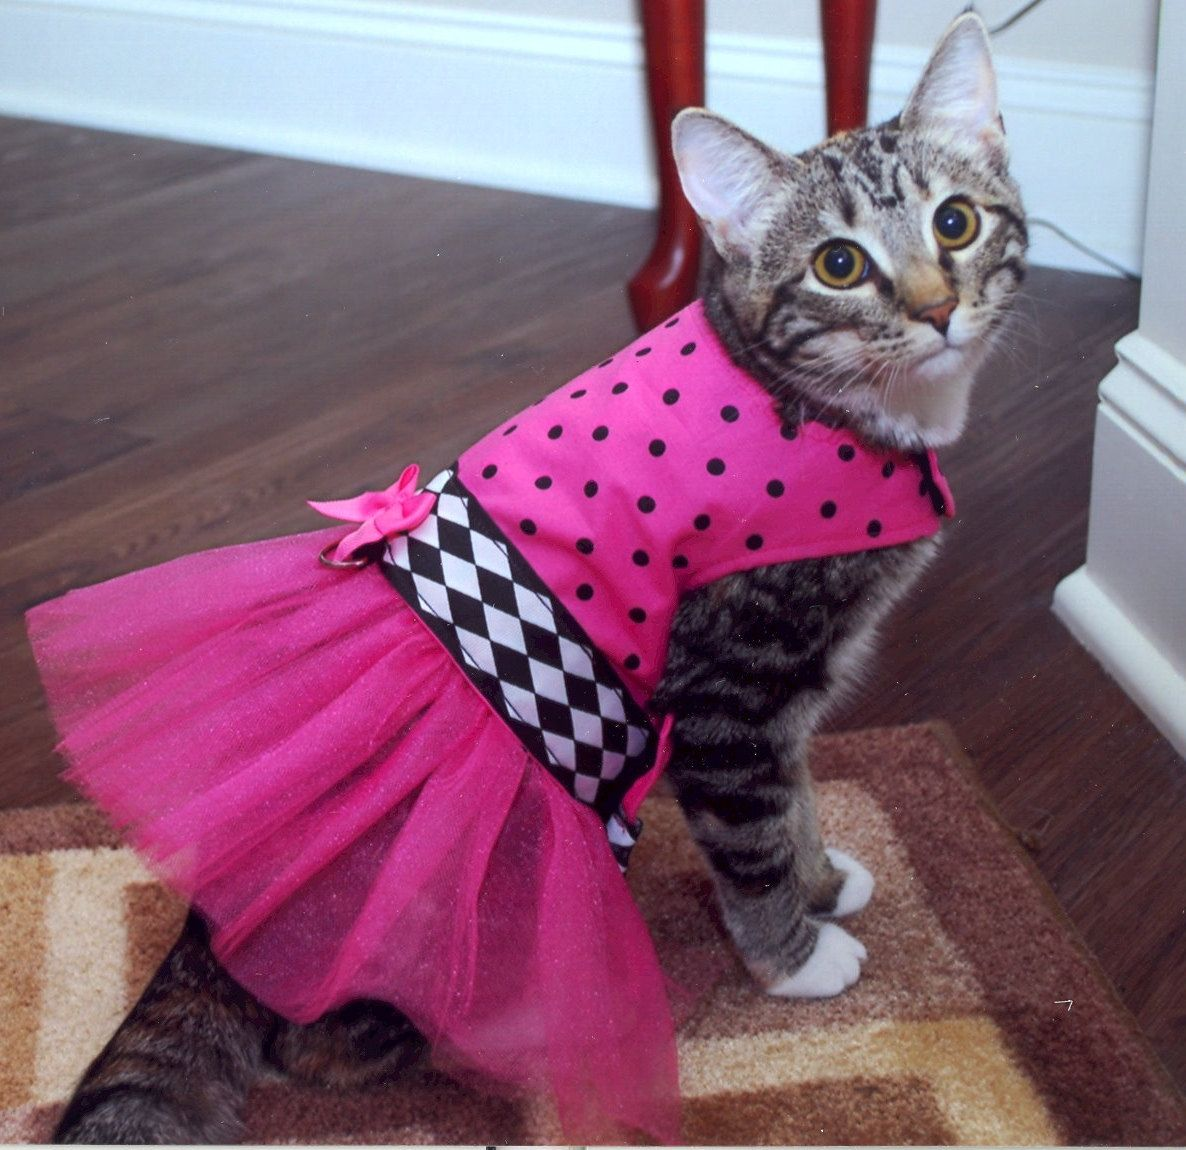 Rockindogs Pink And Black Polkadot Tutu Dress For Cats 24 95 Kittens In Costumes Pet Costumes Cat Clothes